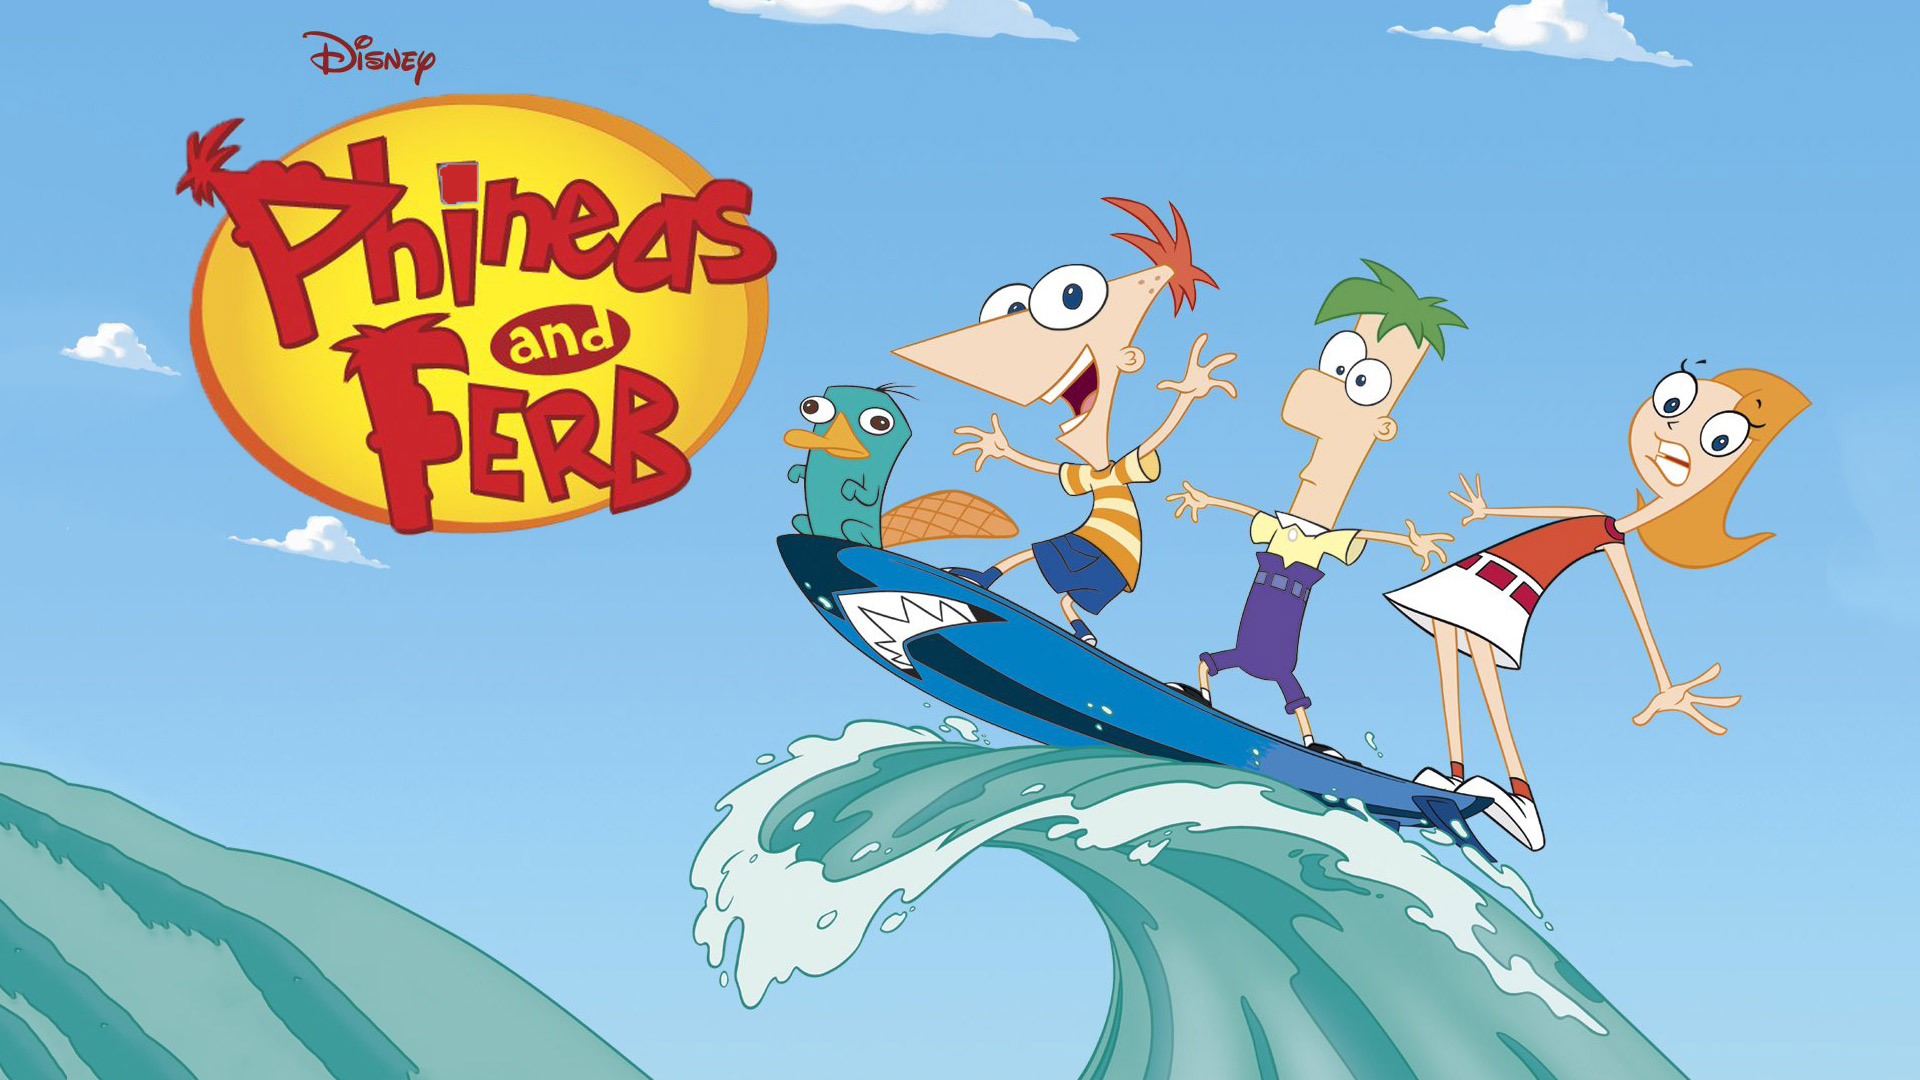 Phineas and Ferb Volume 1